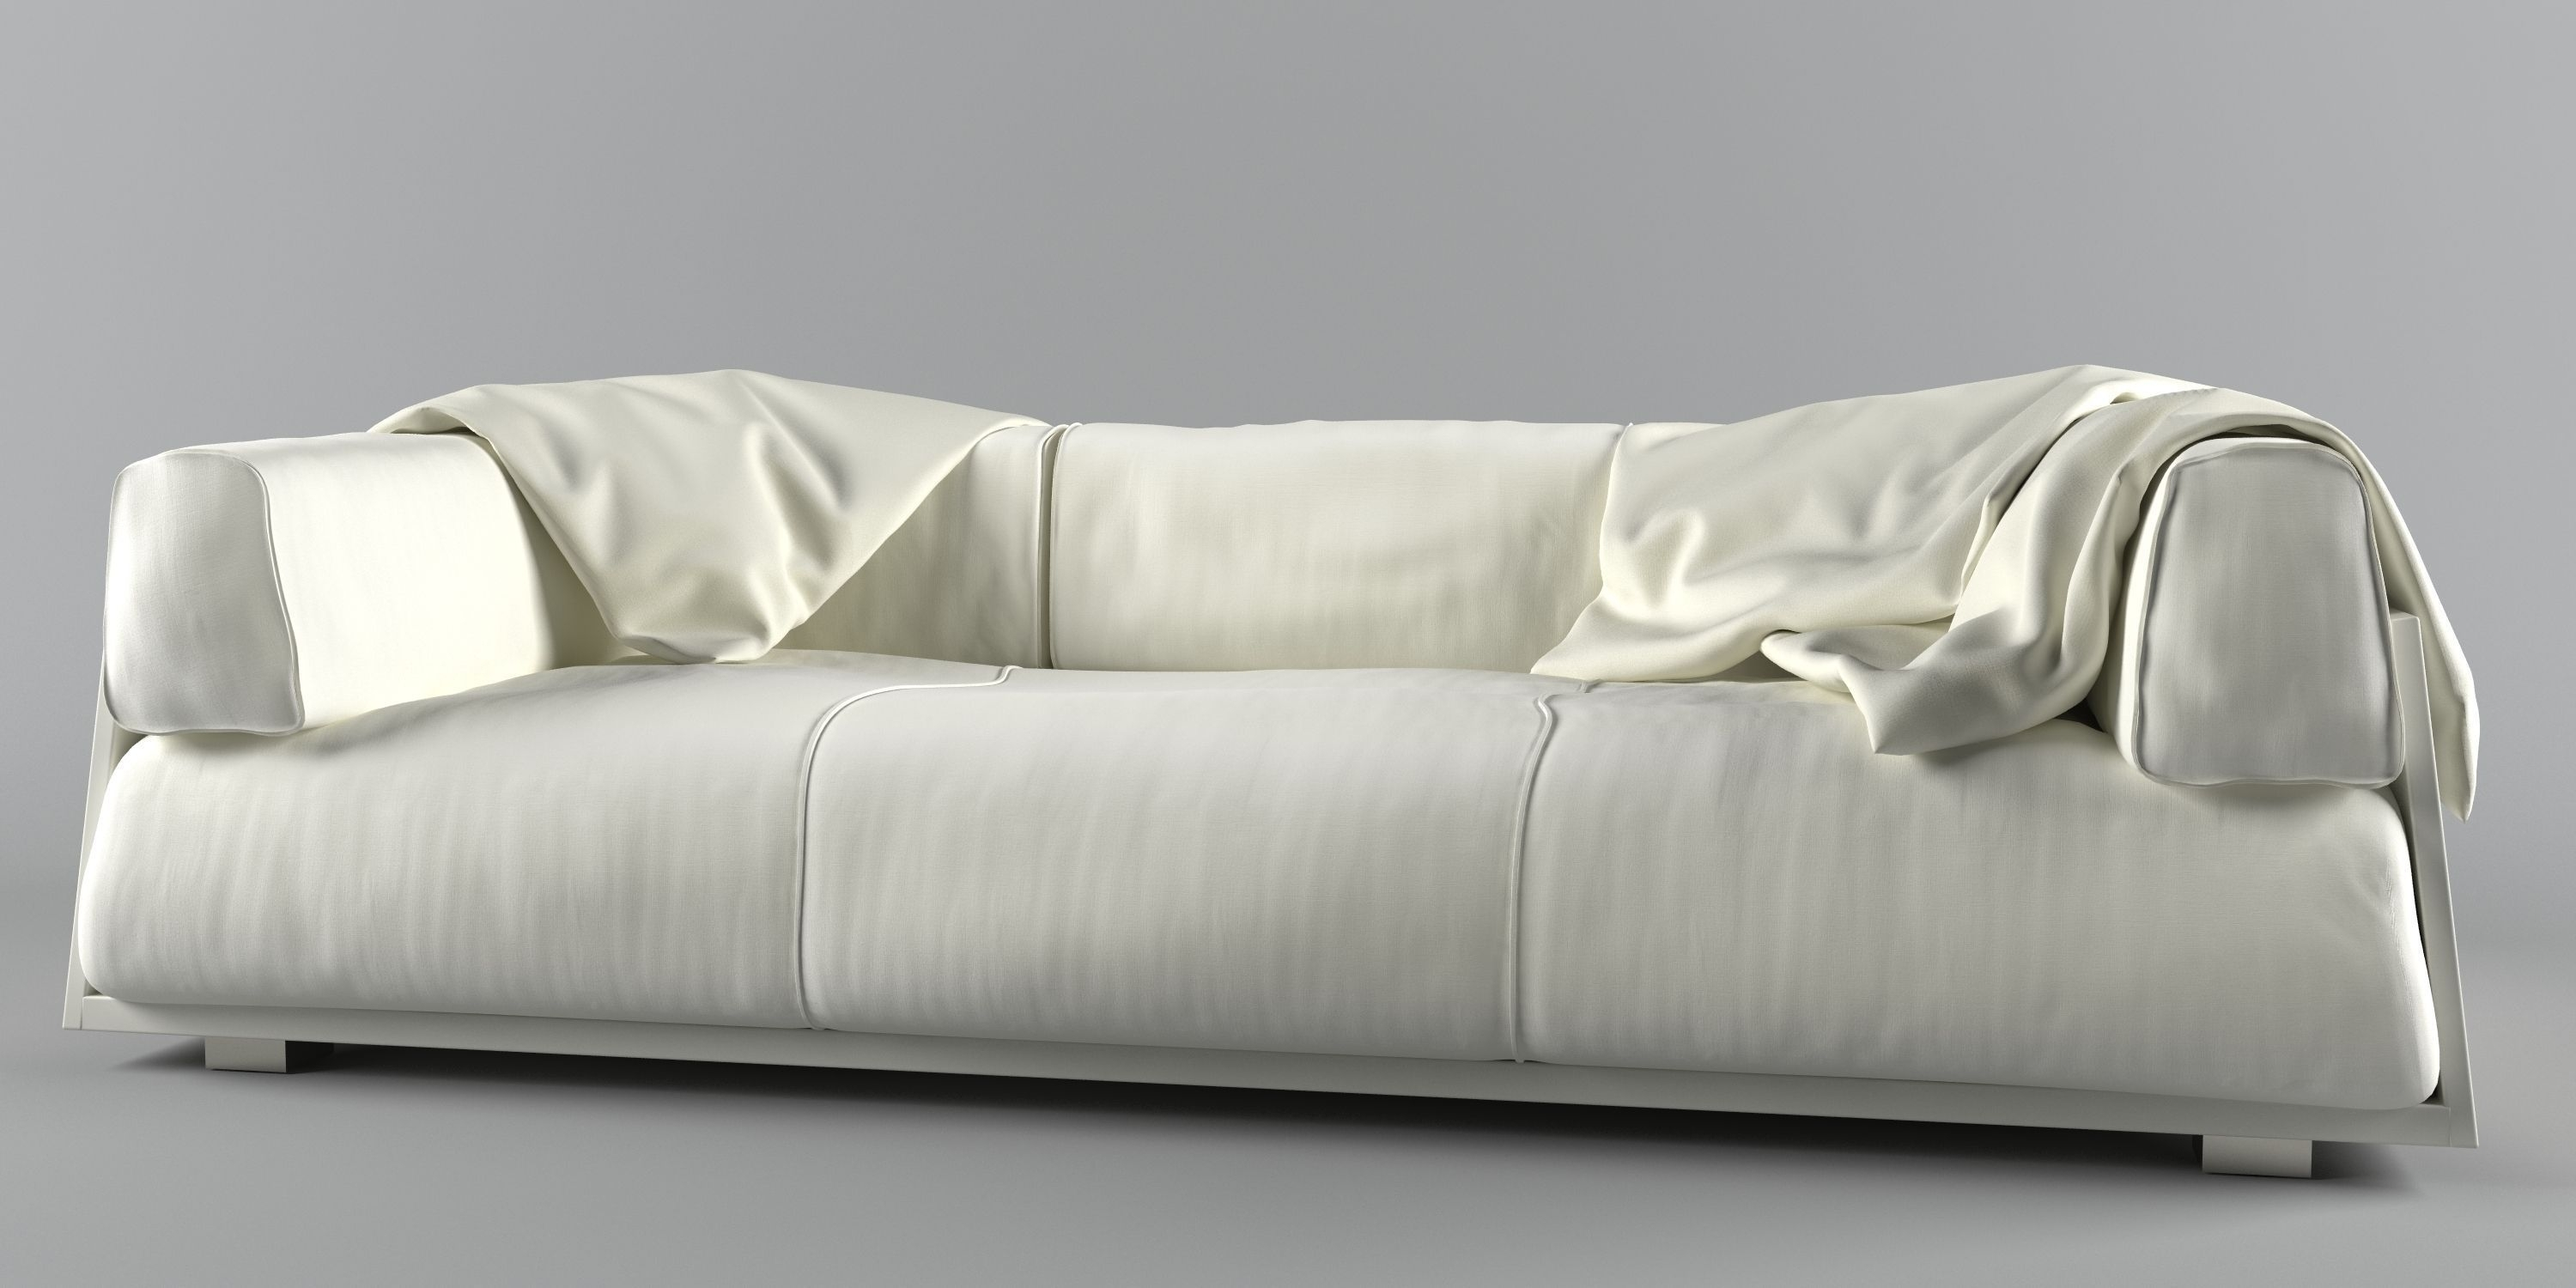 Beautiful Soft Sofa 24 For Sofas And Couches Ideas With Soft Sofa Intended For Soft Sofas (View 9 of 10)